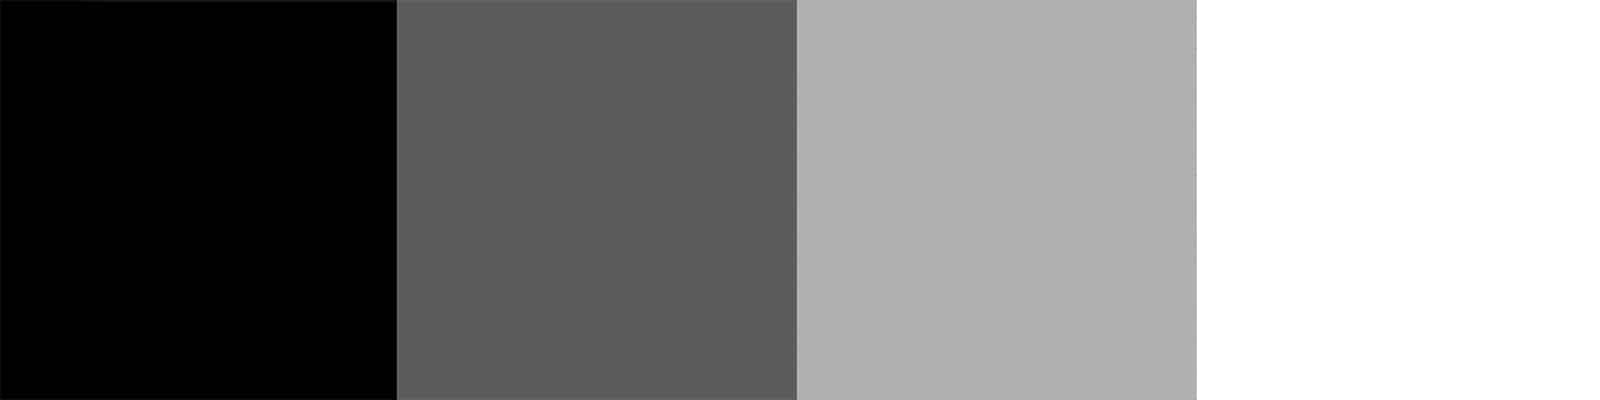 black, dark gray, light gray, and white background color chips